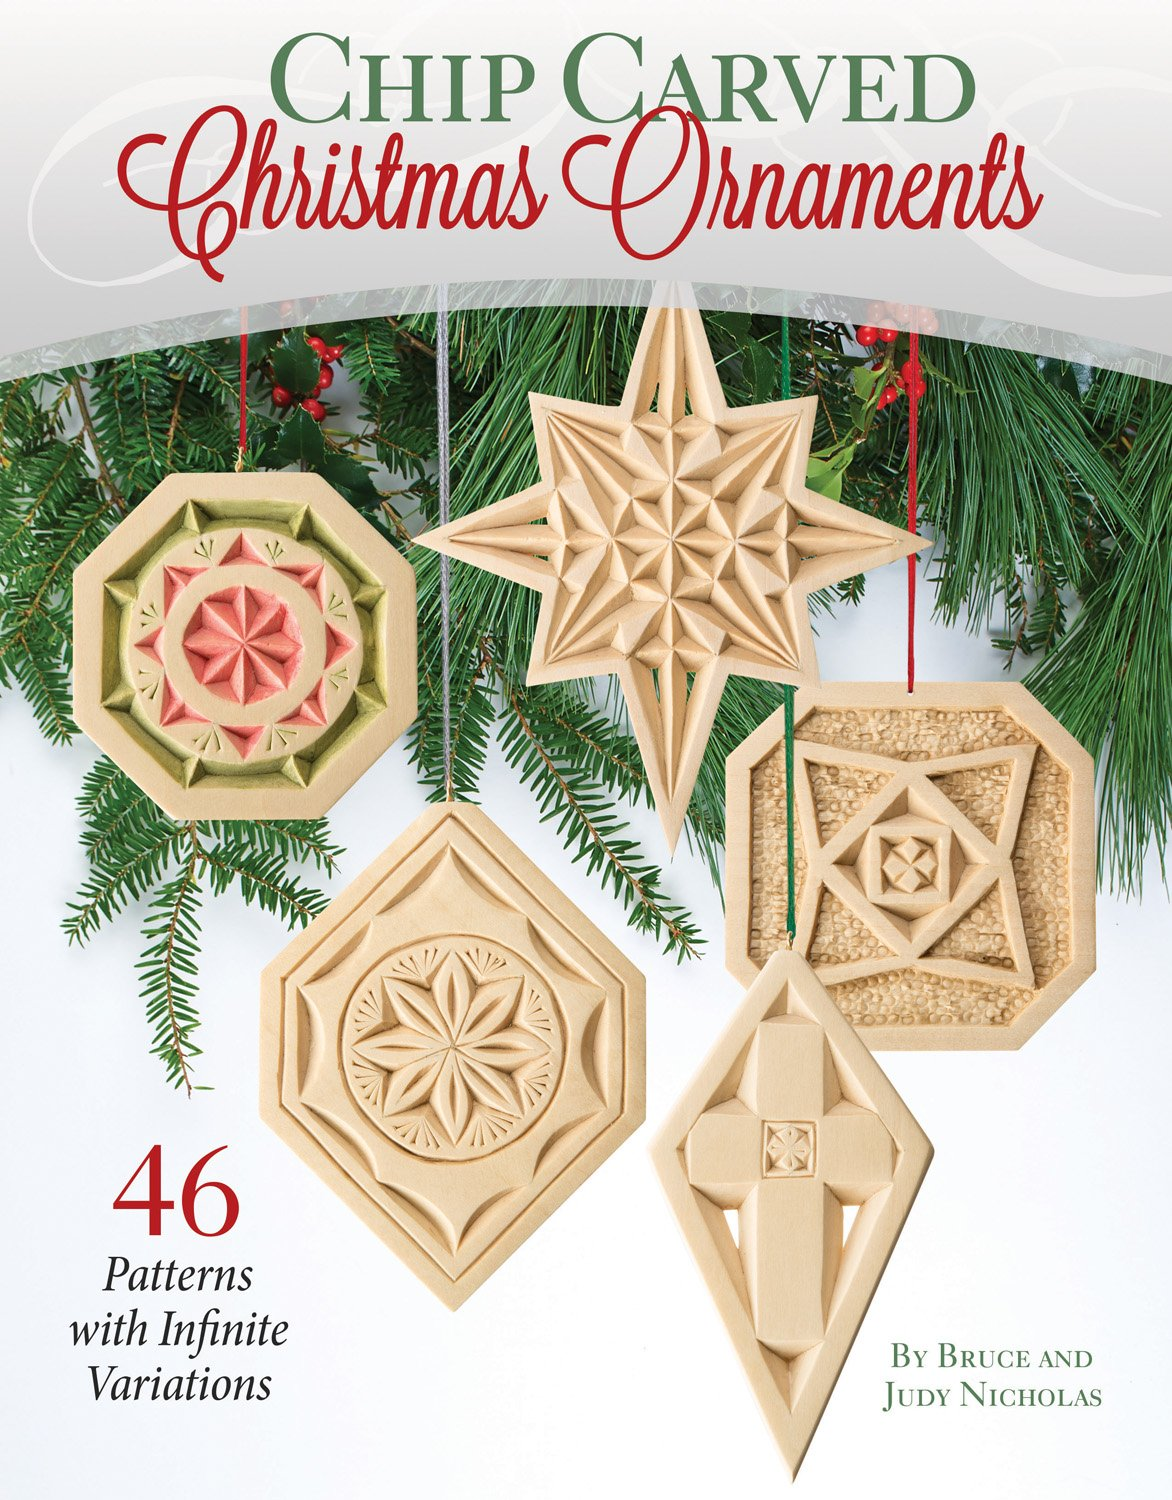 photograph about Printable Chip Carving Patterns referred to as Chip Carved Xmas Ornaments: 20 Designs with Countless